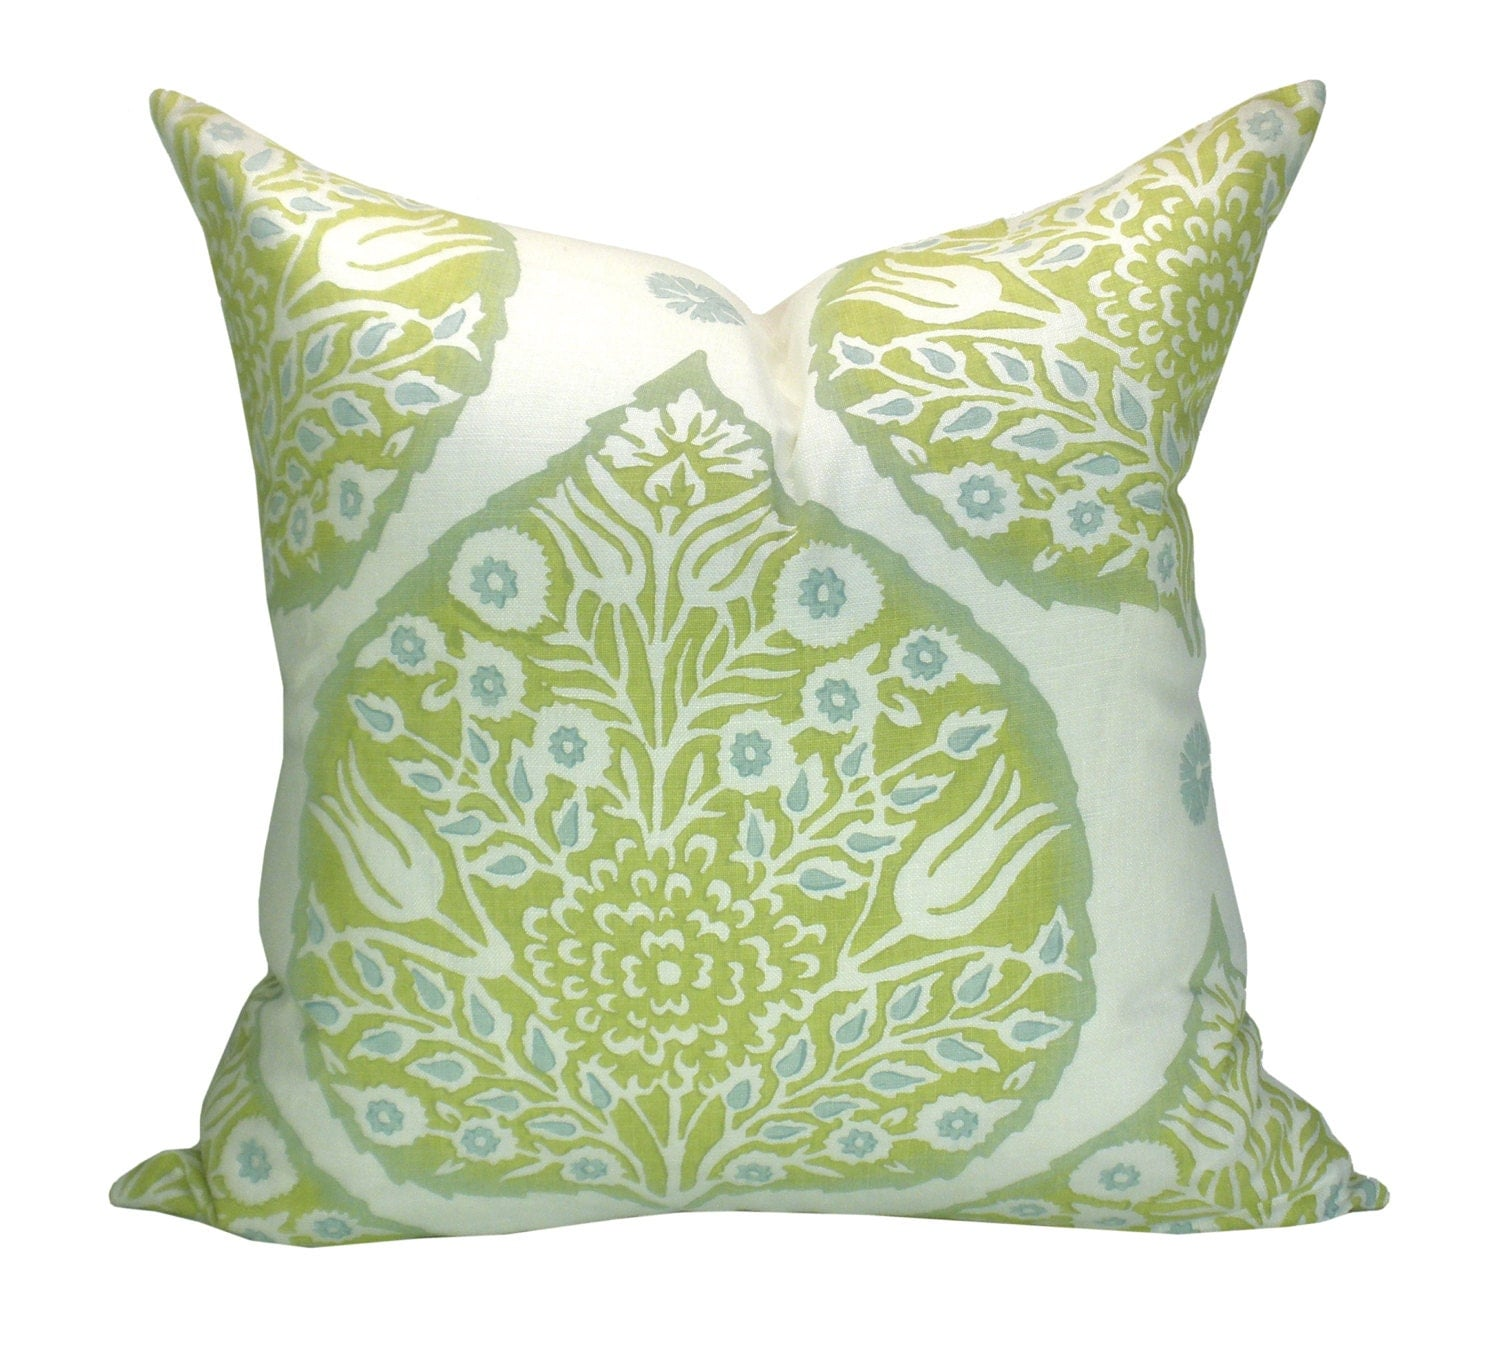 Modern Lotus Pillow : Galbraith & Paul Lotus pillow cover in Sprout by sparkmodern